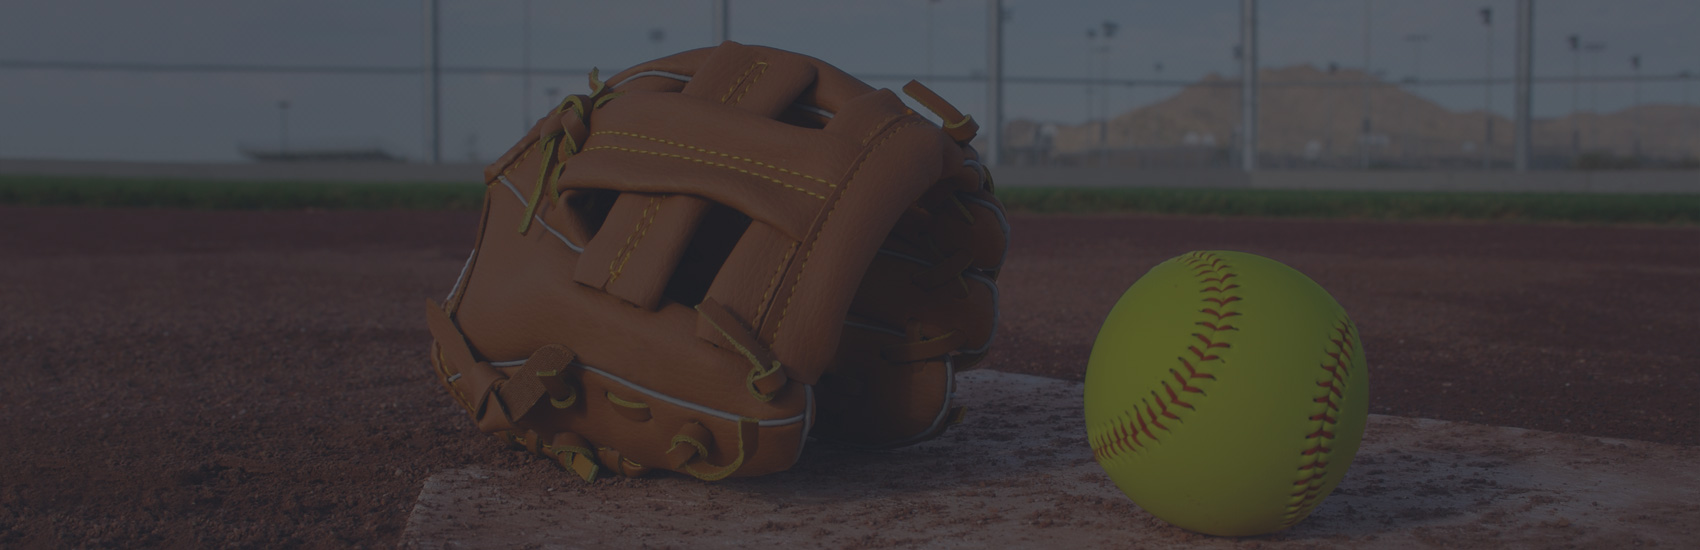 Women's softball league fundraiser Saturday